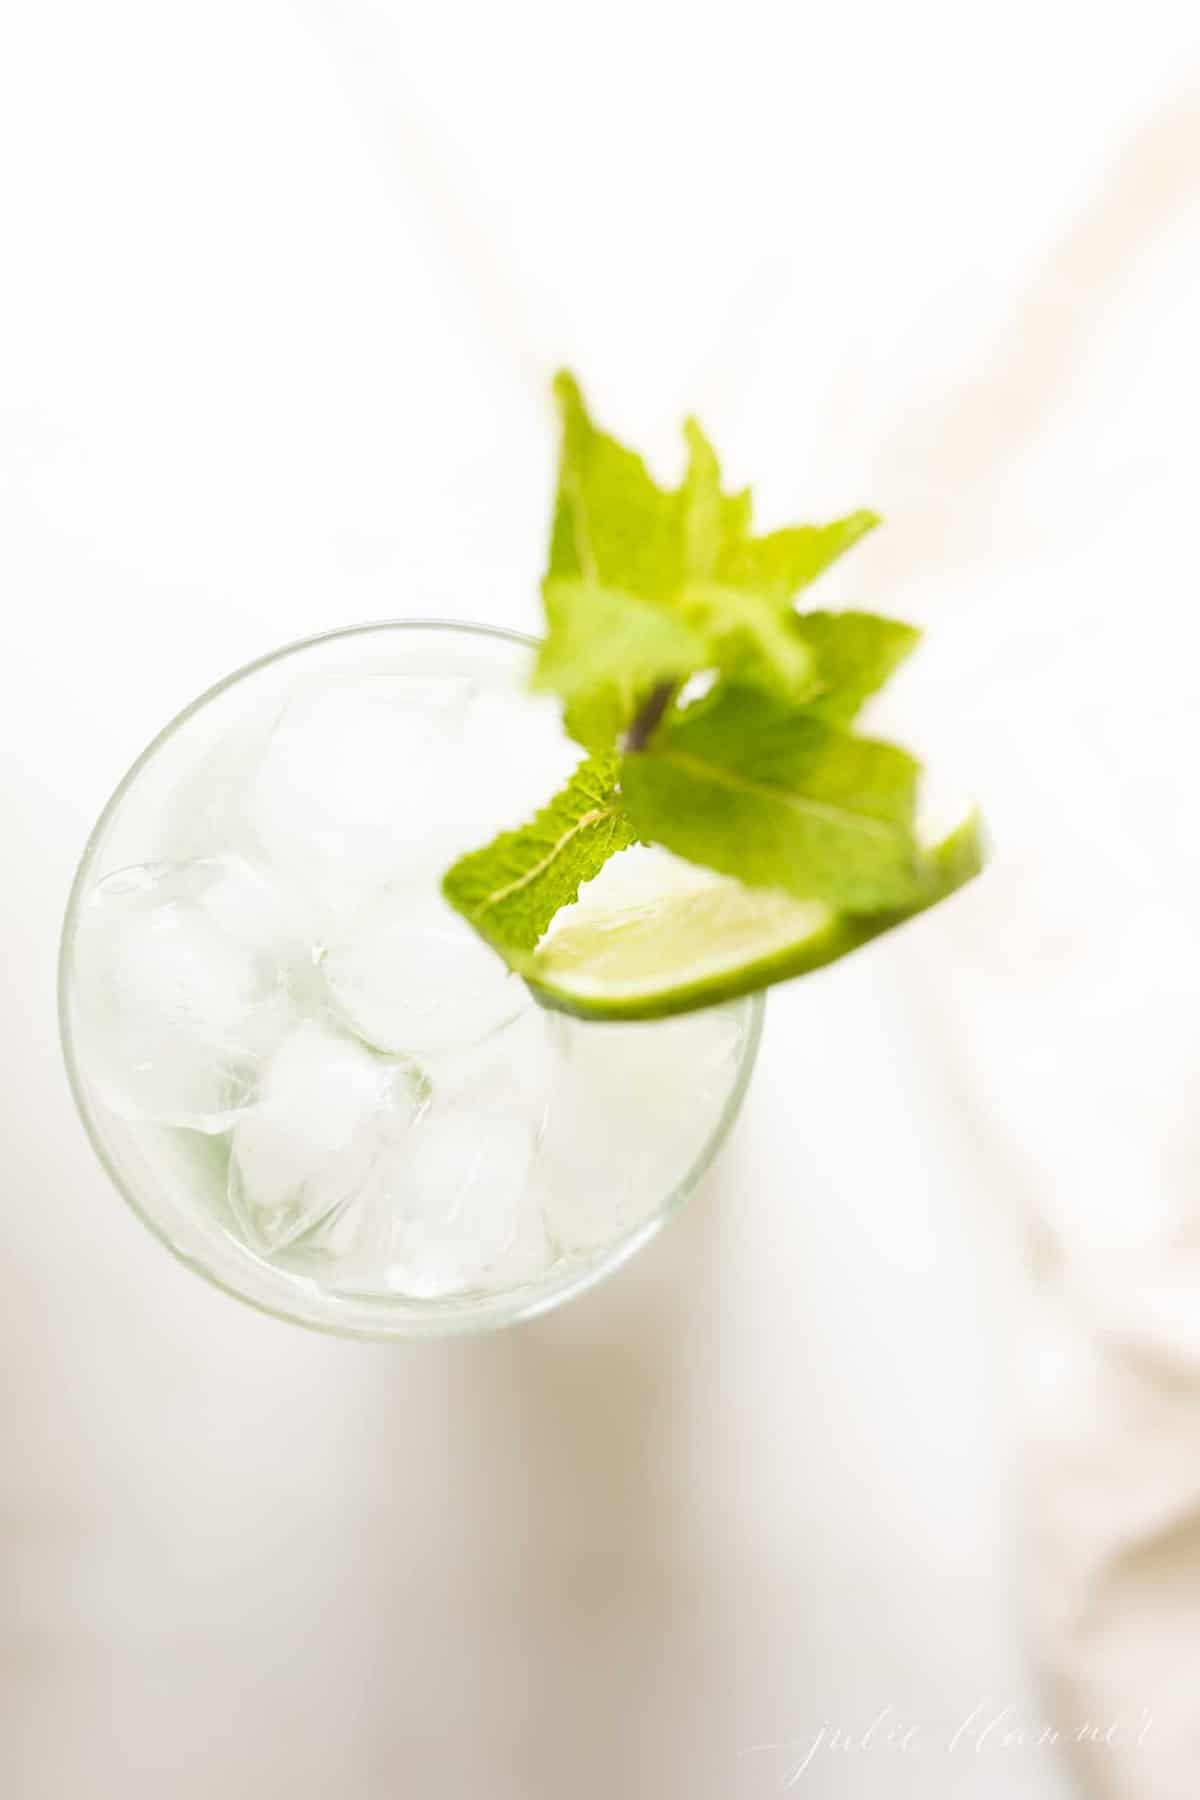 white marble countertop, looking down into an icy glass filled with a mojito.